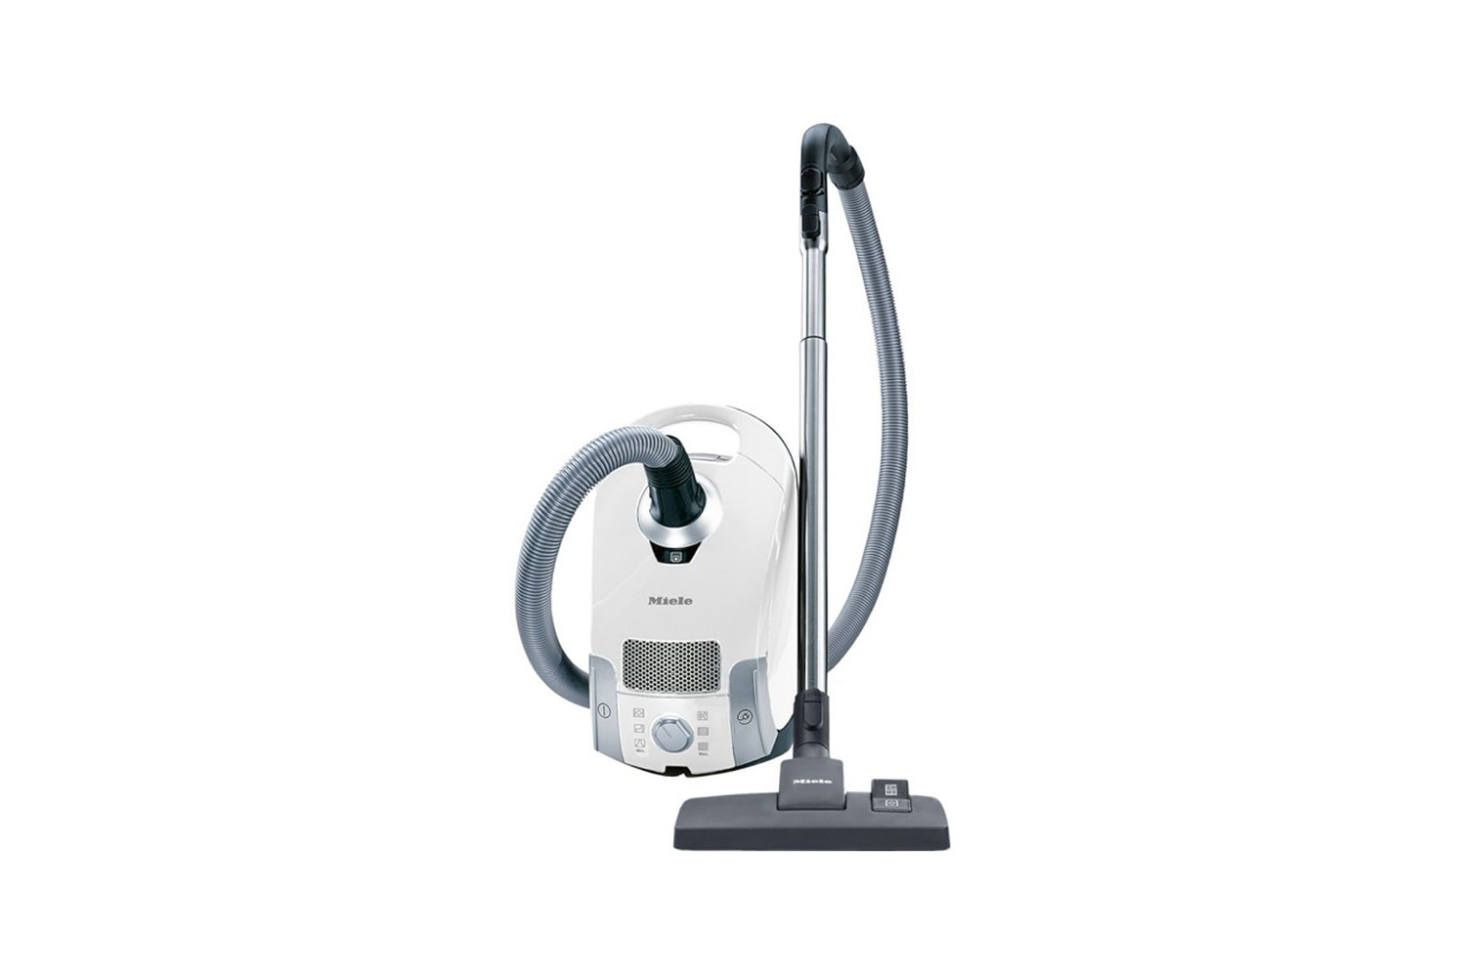 The Miele Compact C1 Pure Suction Vacuum Is Designed For Cleaning Both Hardwood Floors And Carpeted Surfaces Inc Best Canister Vacuum Canister Vacuums Vacuums